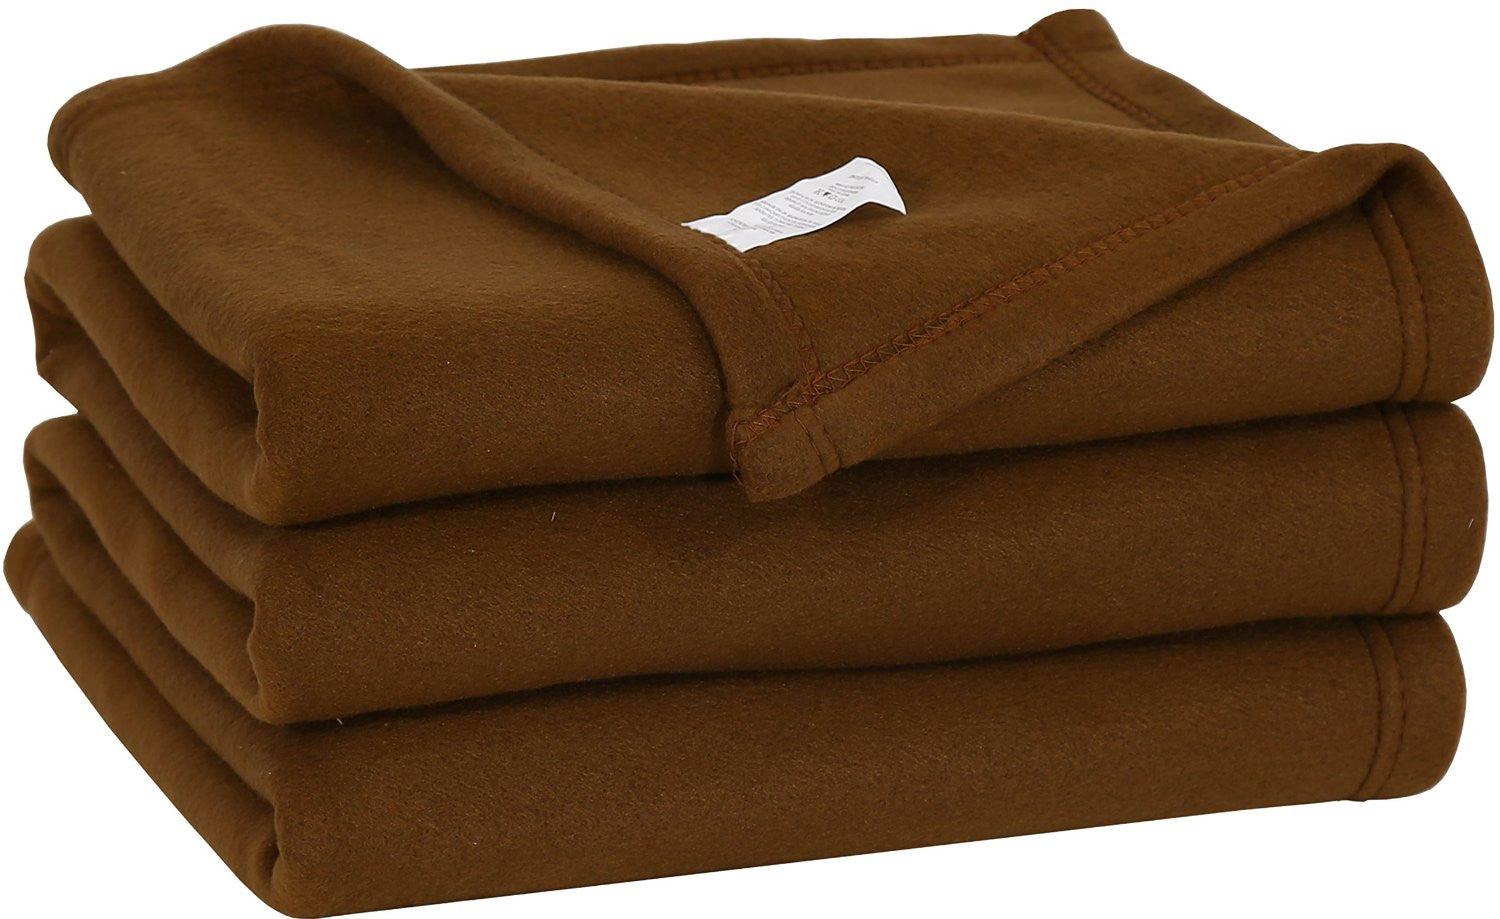 Polar Fleece Throw Blanket (Choc)